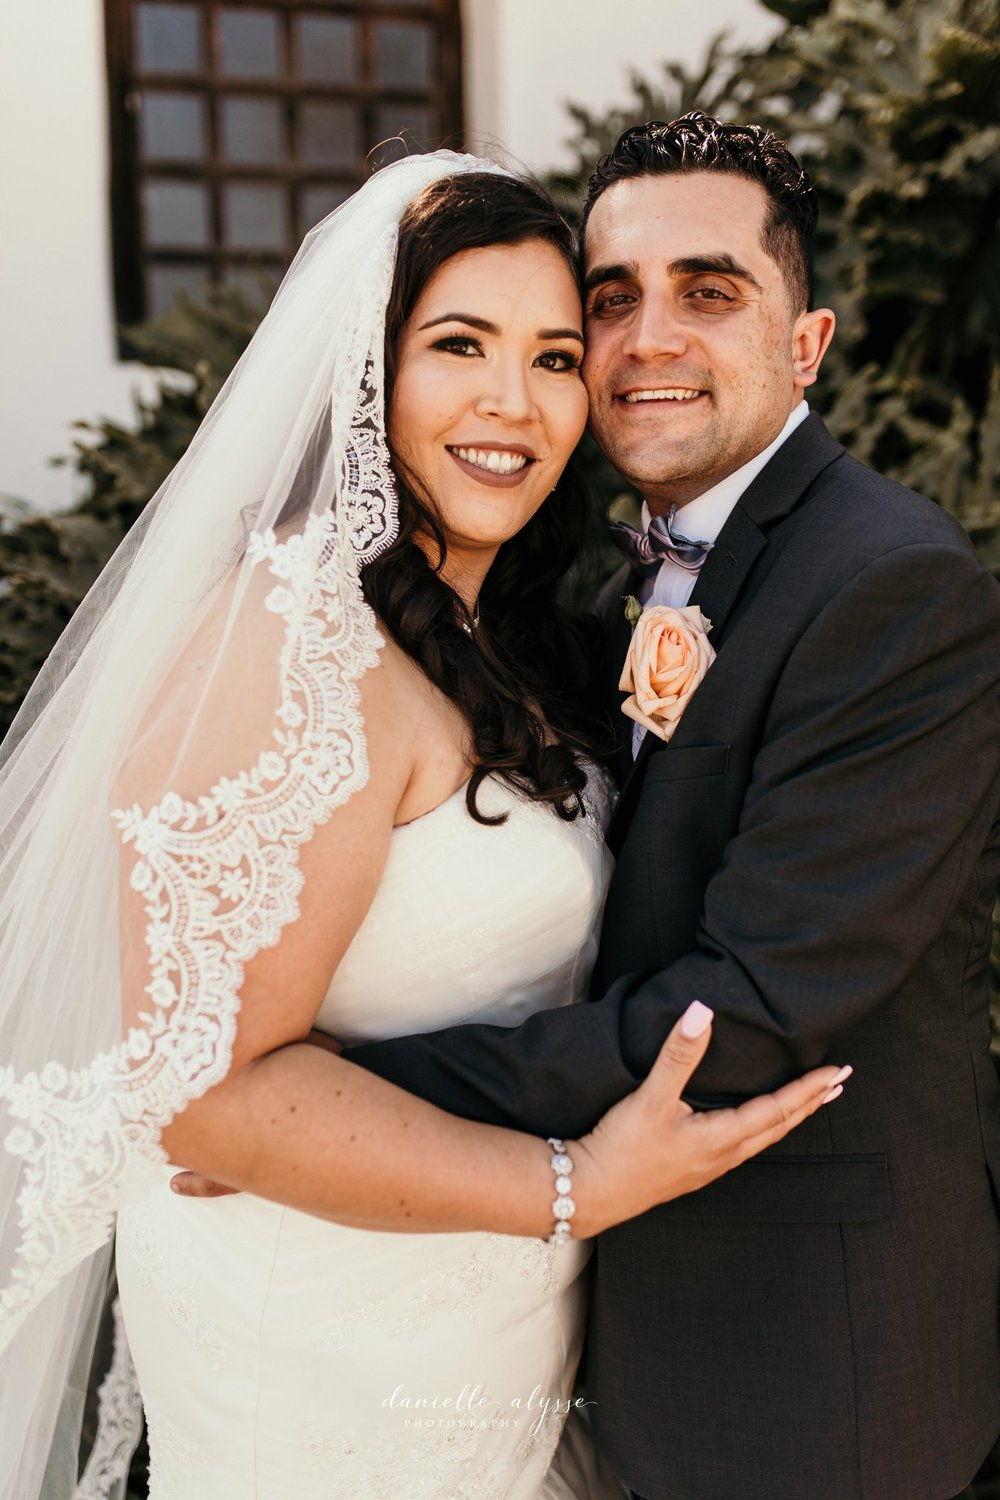 180630_wedding_lily_ryan_mission_soledad_california_danielle_alysse_photography_blog_687_WEB.jpg